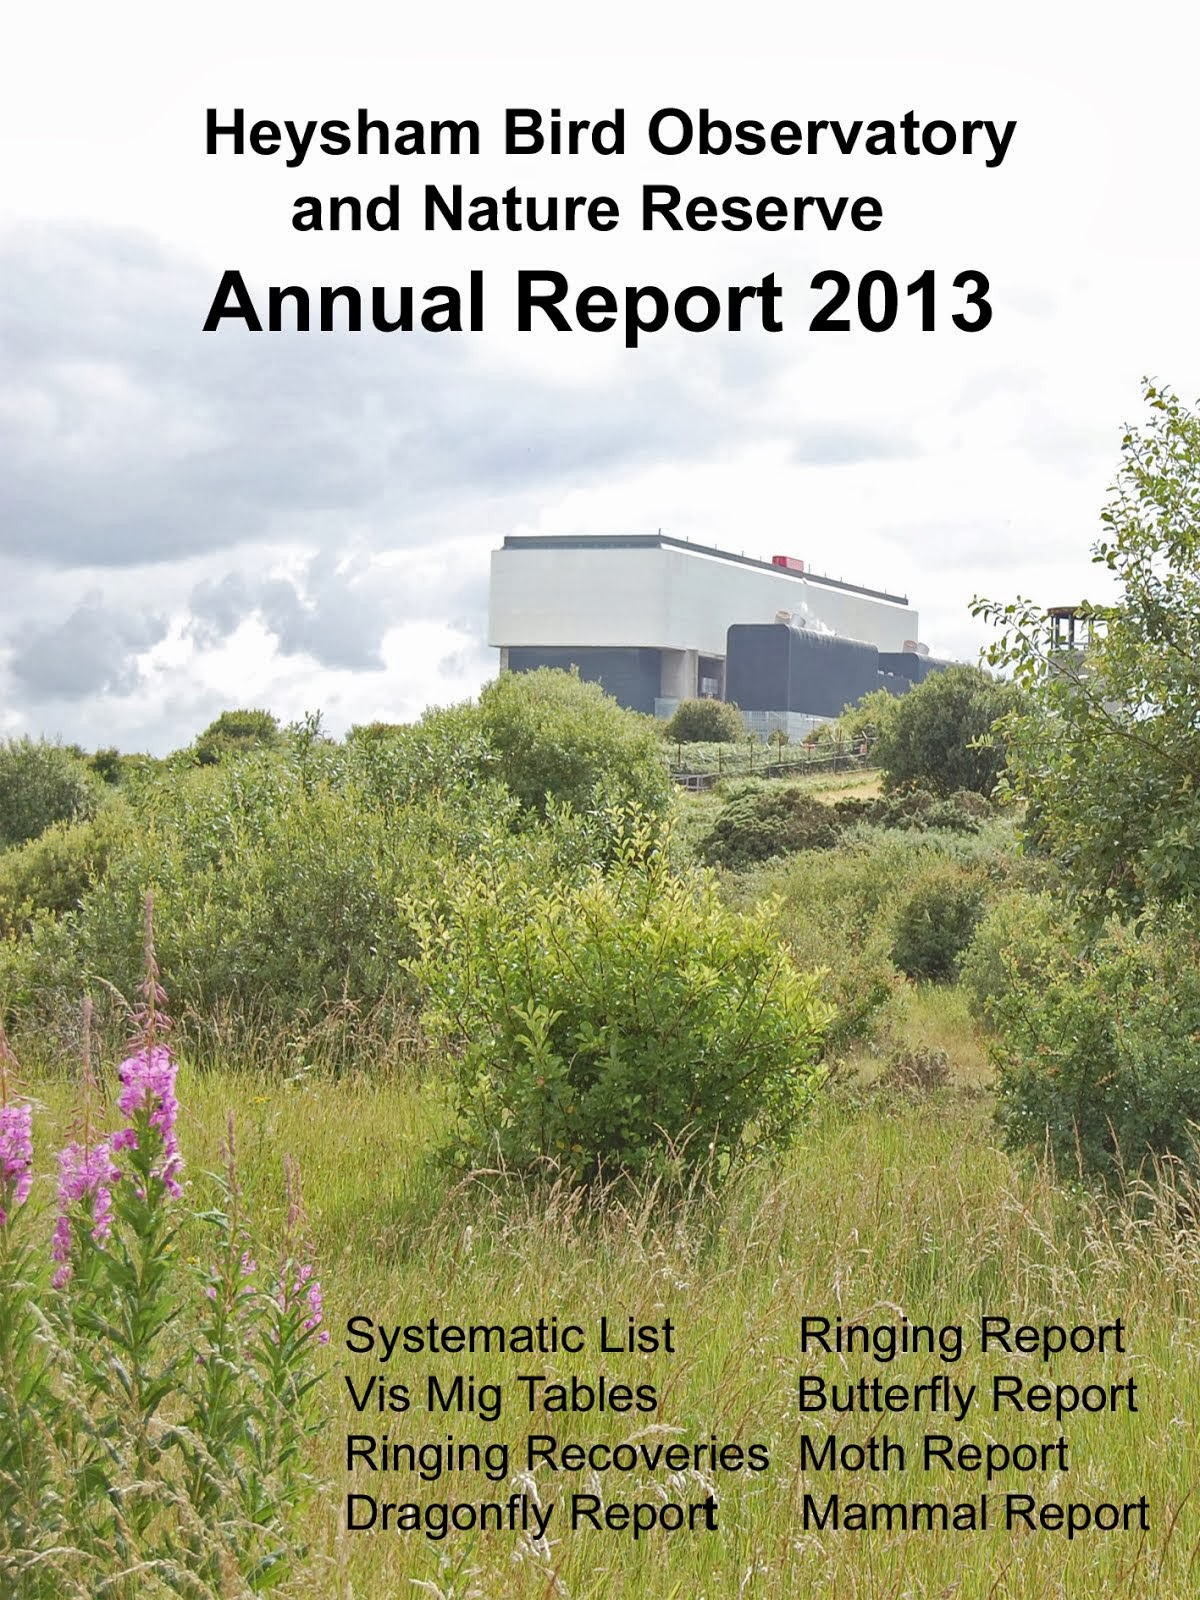 2013 Heysham Obs report available now